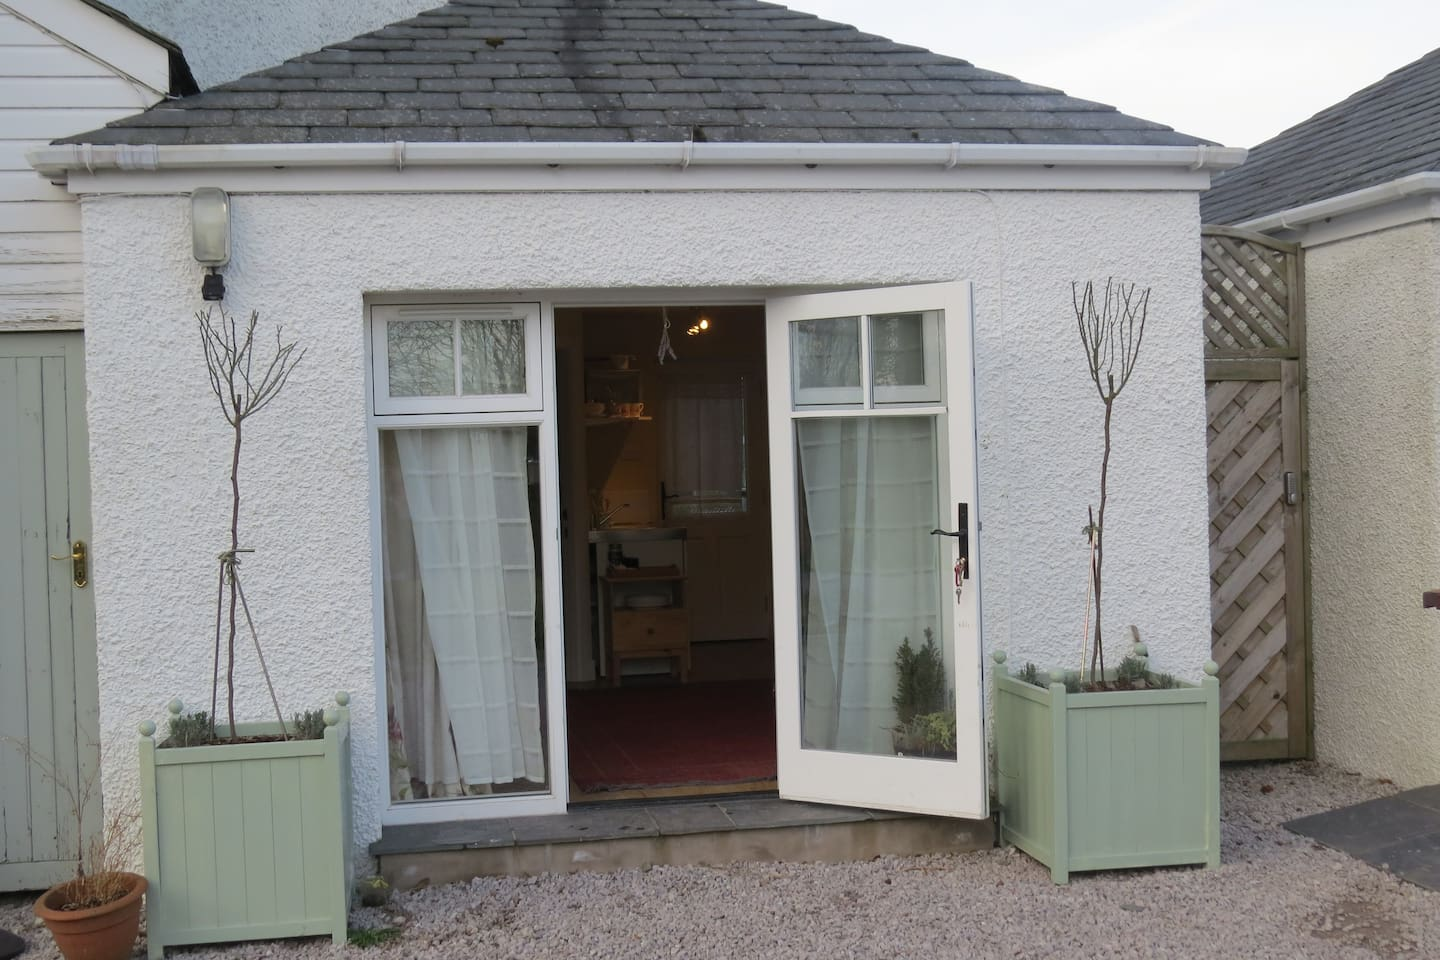 the exterior of the Little Garden House - the roses will look much nicer in the summer!